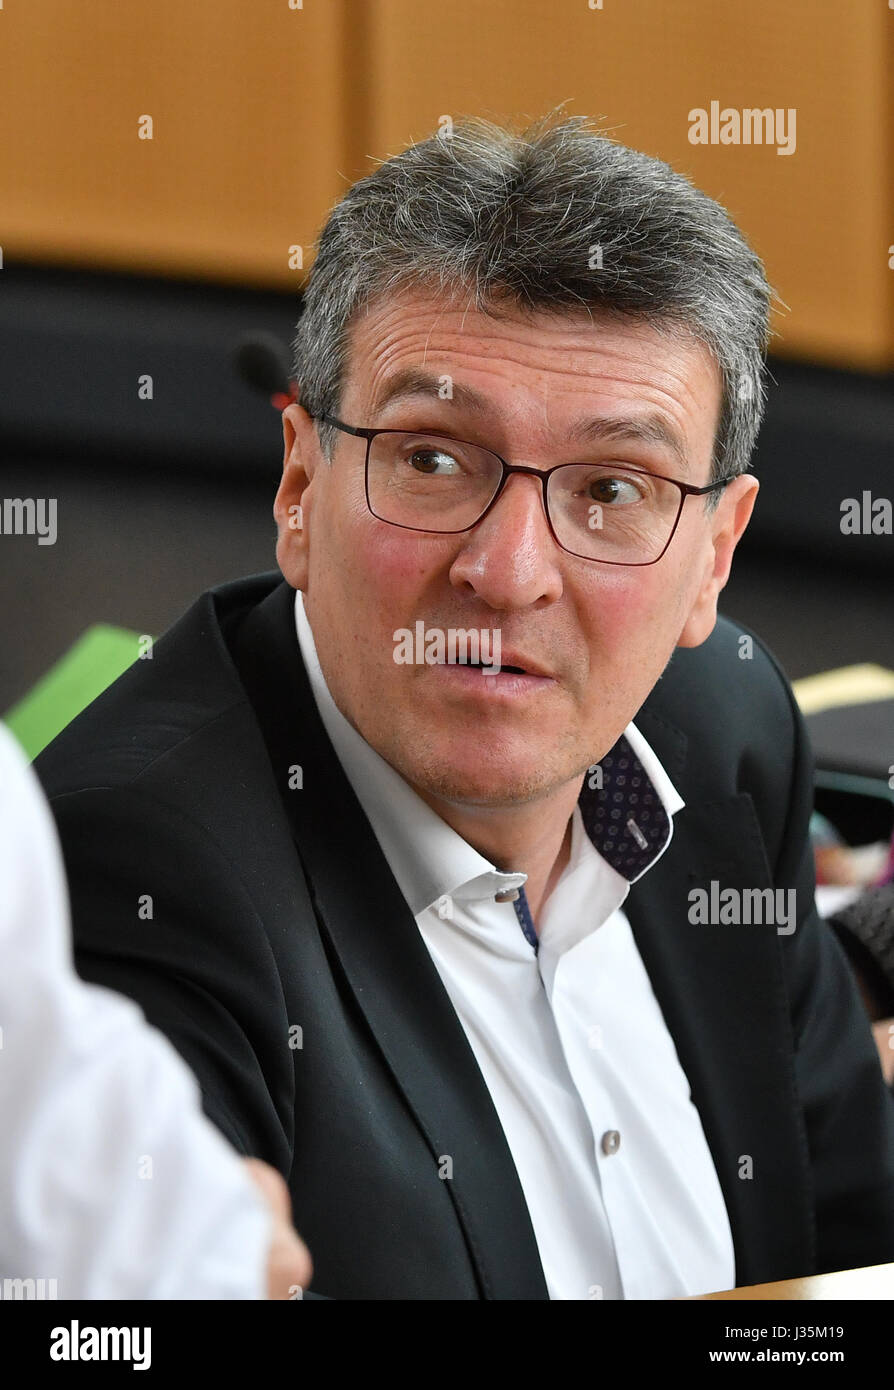 Erfurt, Germany. 03rd May, 2017. Thuringia's Minister for Migration Dieter Lauinger (Alliance 90/The Greens) - Stock Image